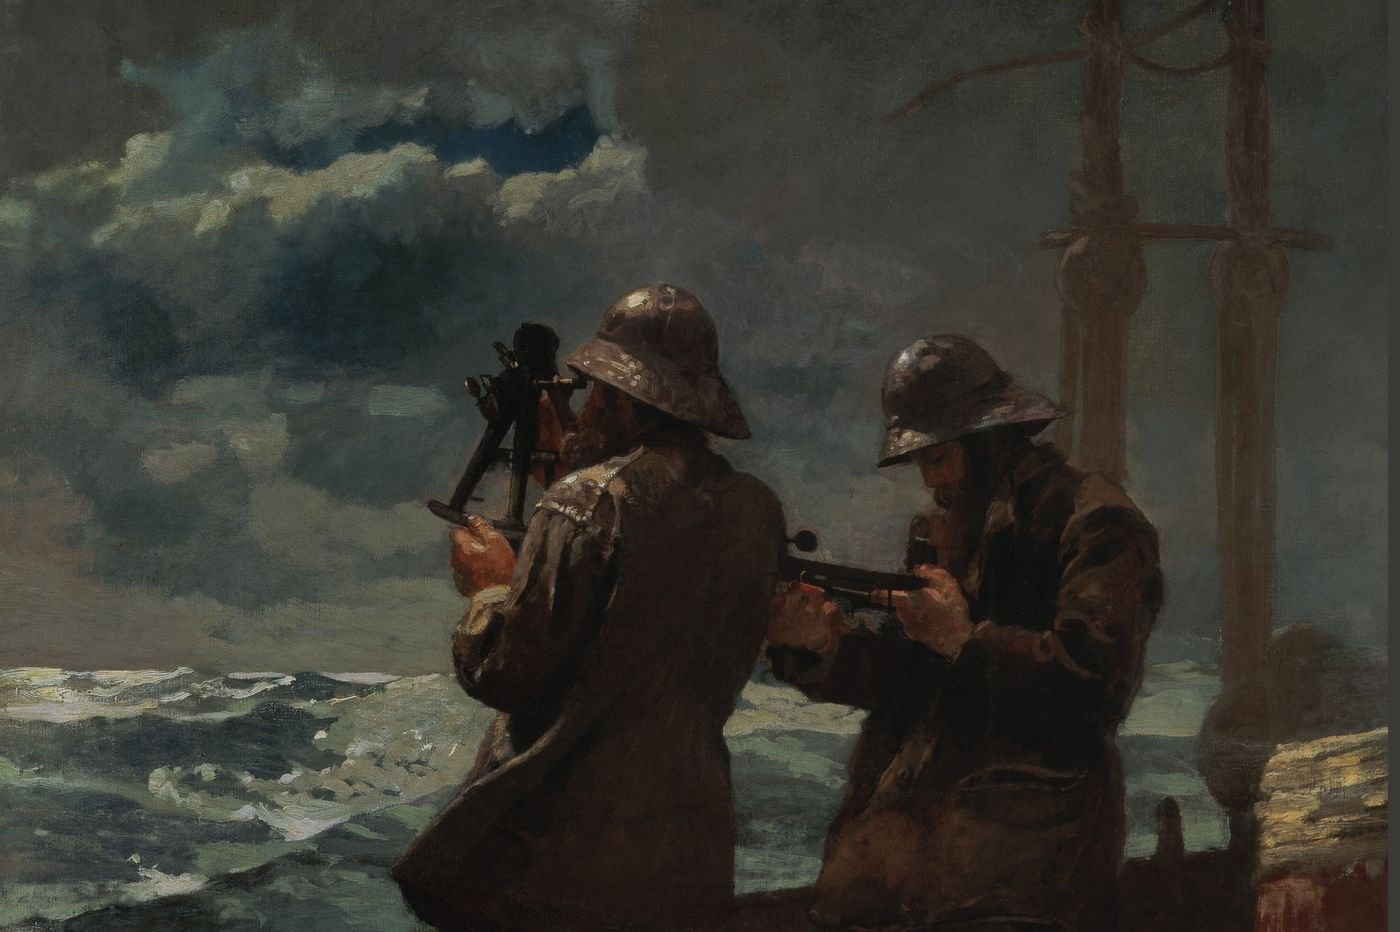 Winslow Homer and the camera at Brandywine: Less than meets the eye